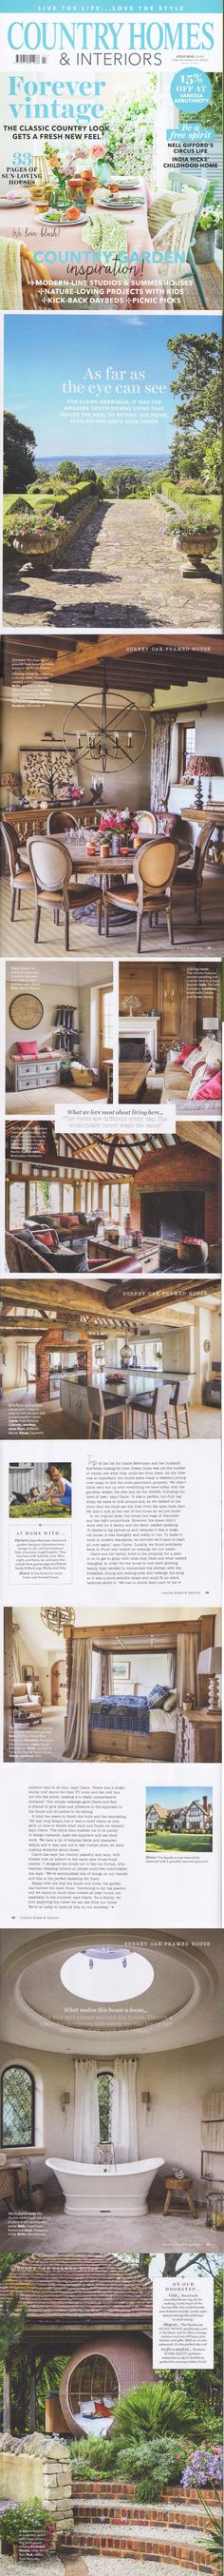 Country Homes & Interiors July 2018  Featuring the Guildford Project by Back to Front Exterior Design